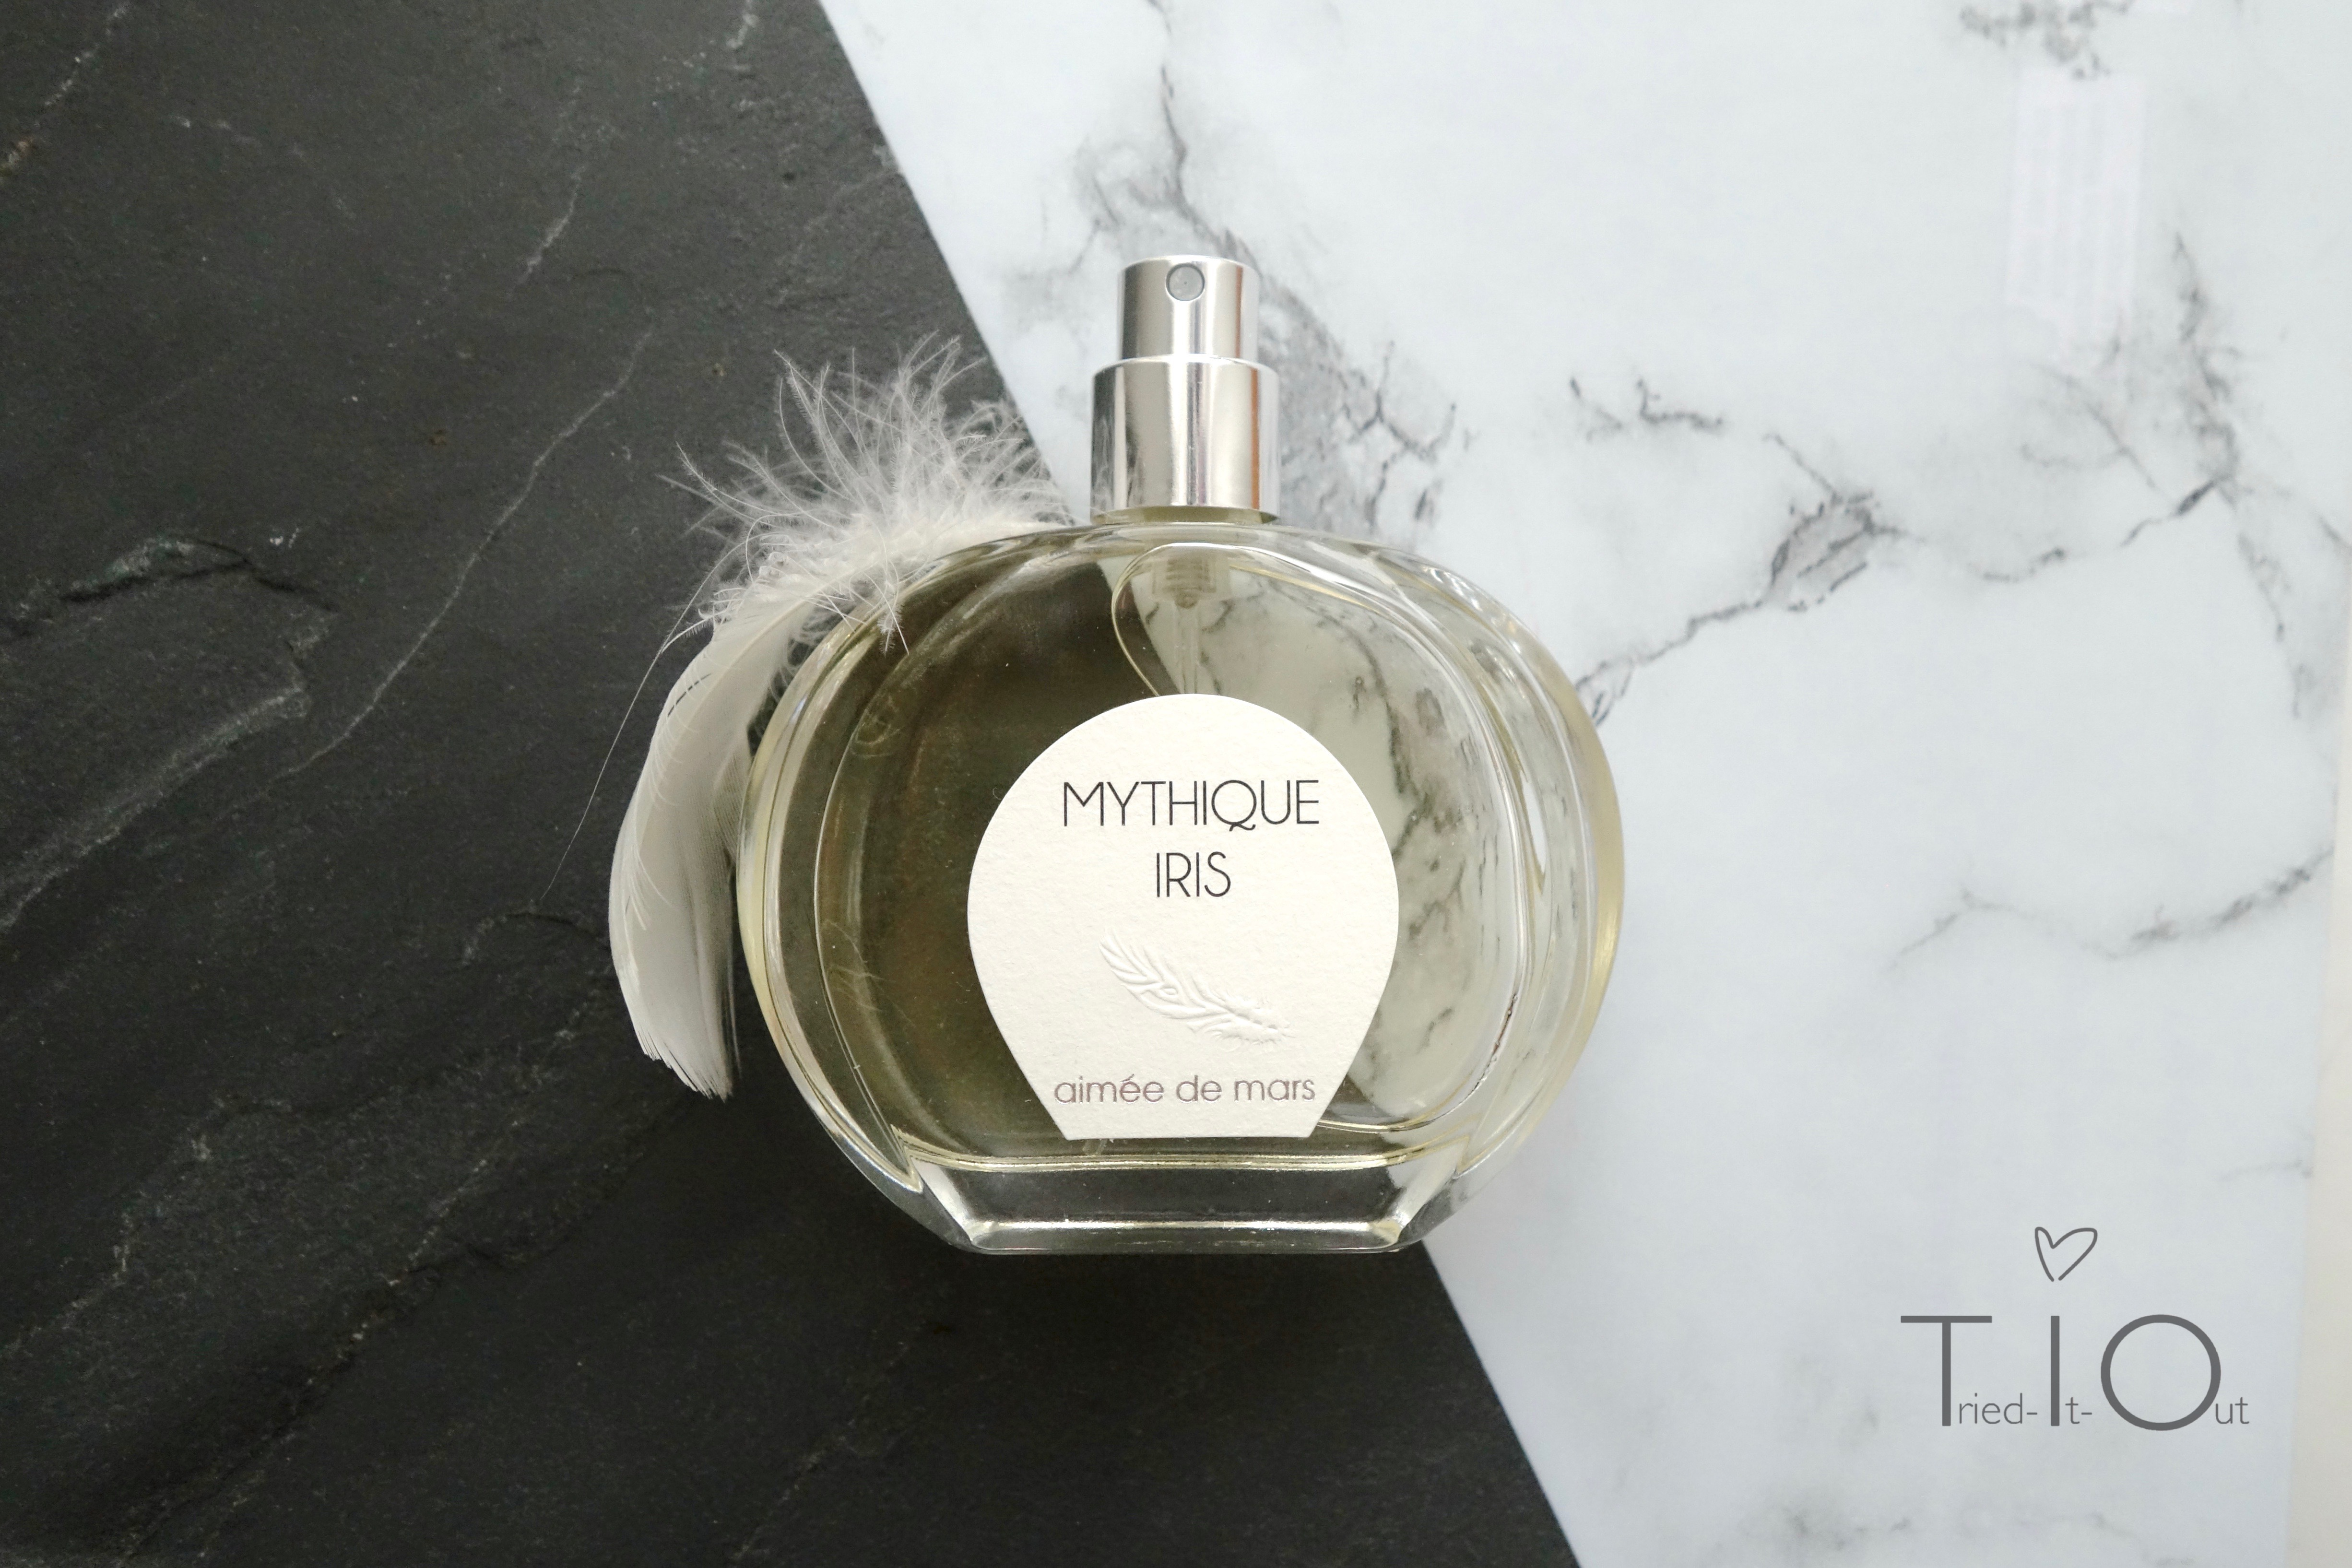 My scent: Mythique Iris by Aimée De Mars [The nature of scents 3]